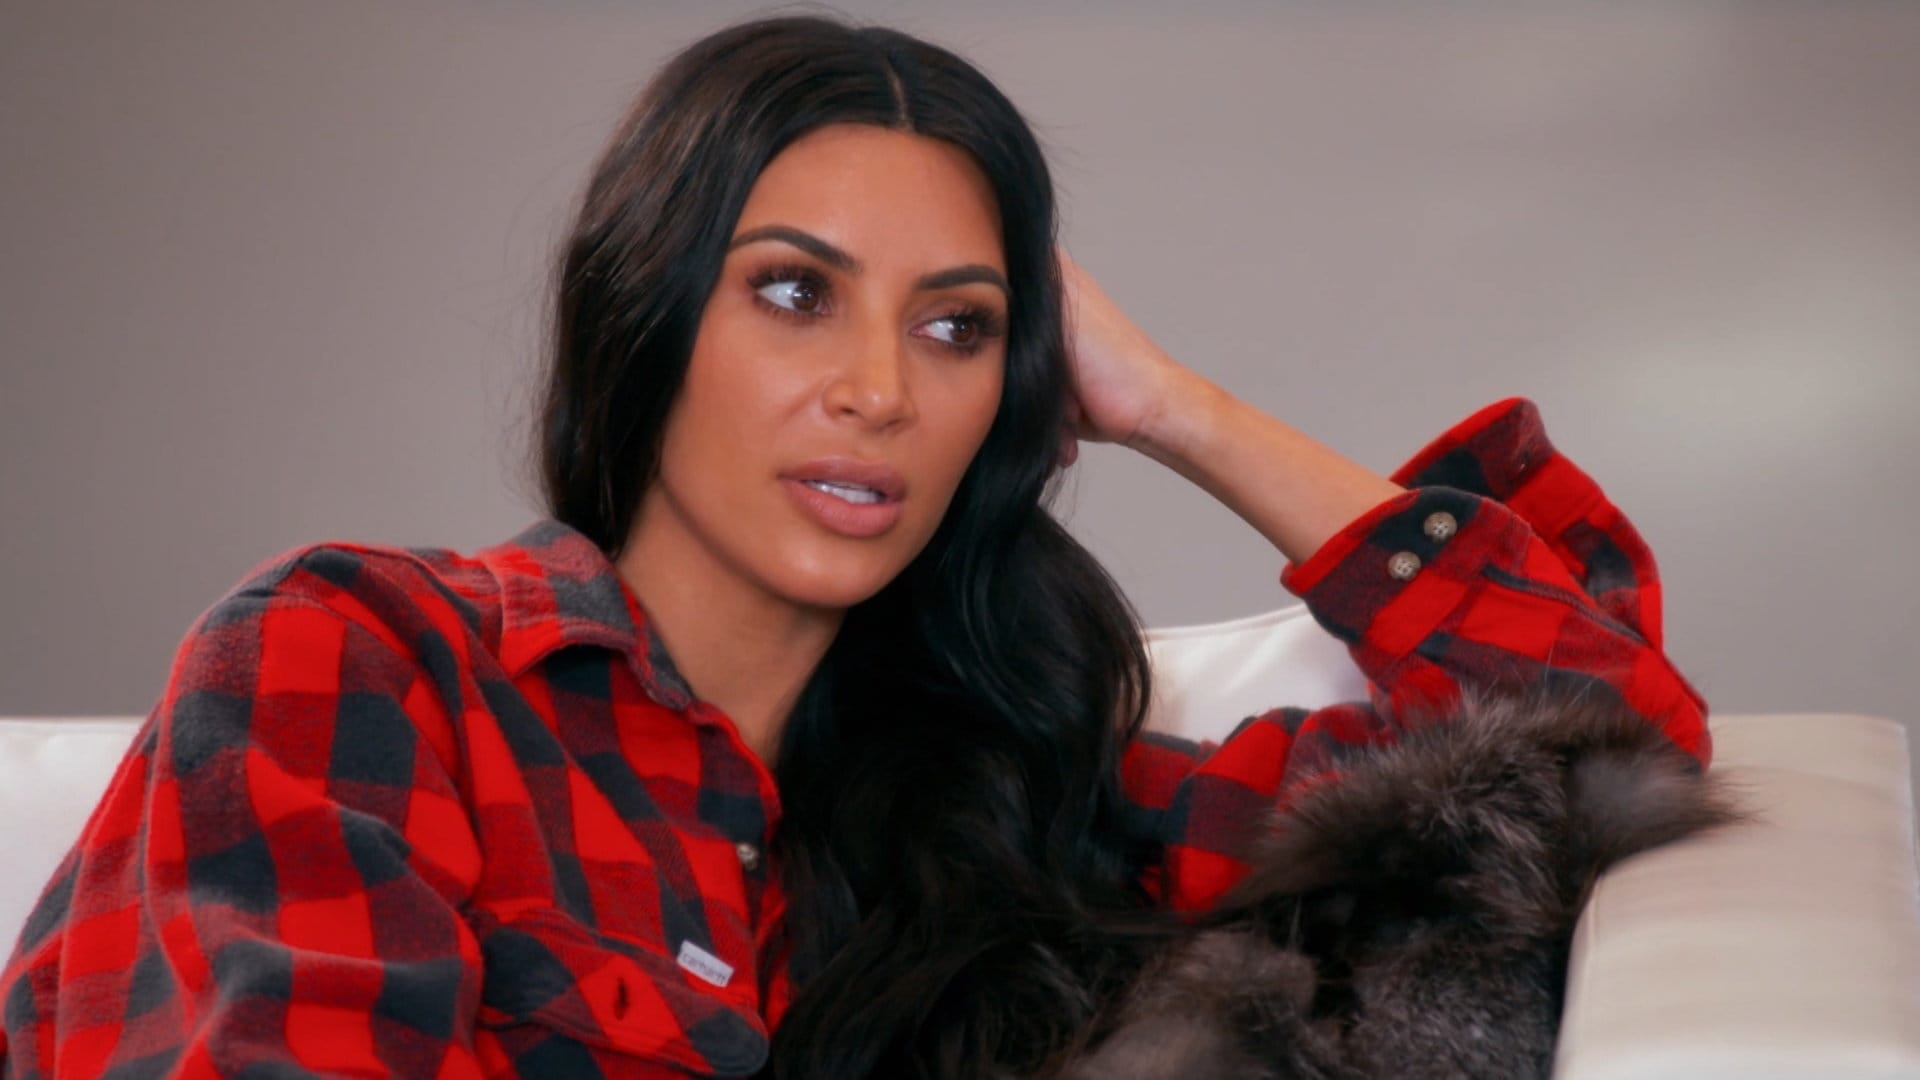 Keeping Up with the Kardashians - Season 13 Episode 4 : Kim's Last Ditch Effort